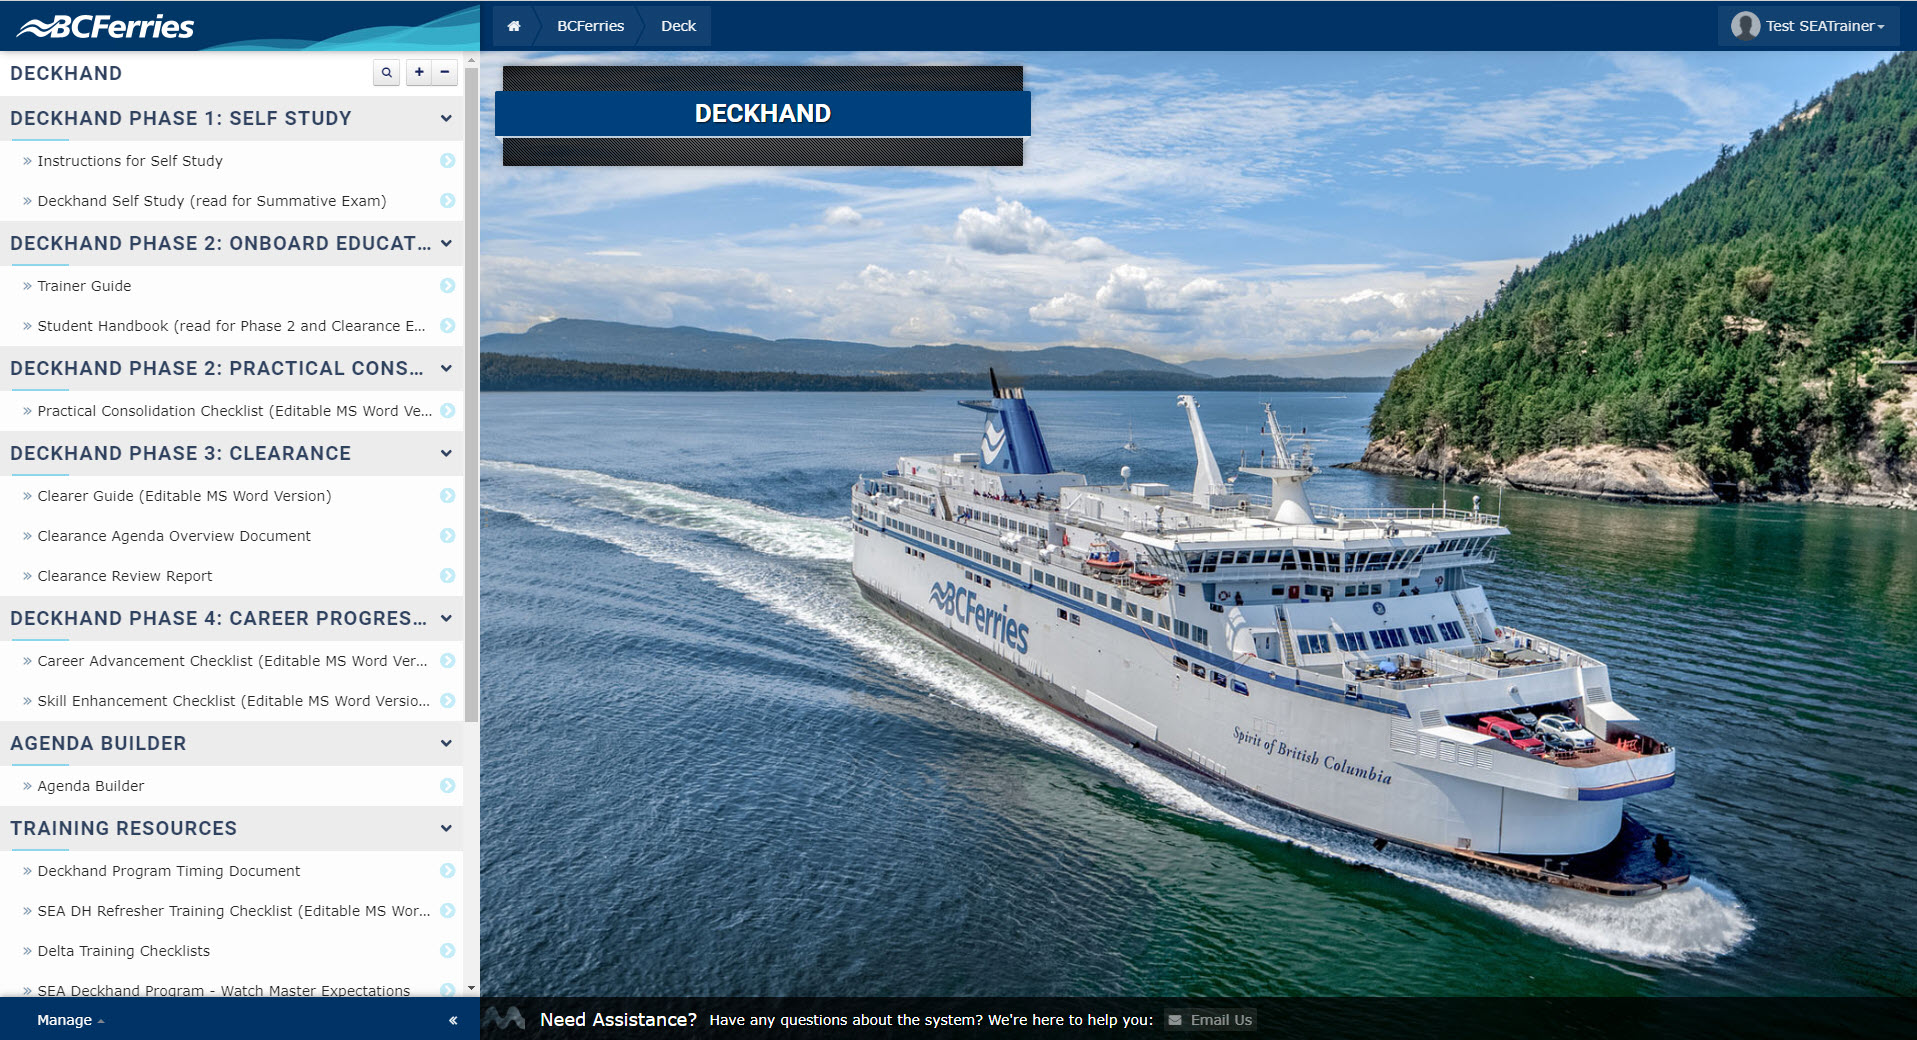 SEA-LMS-Deckhand-Homepage